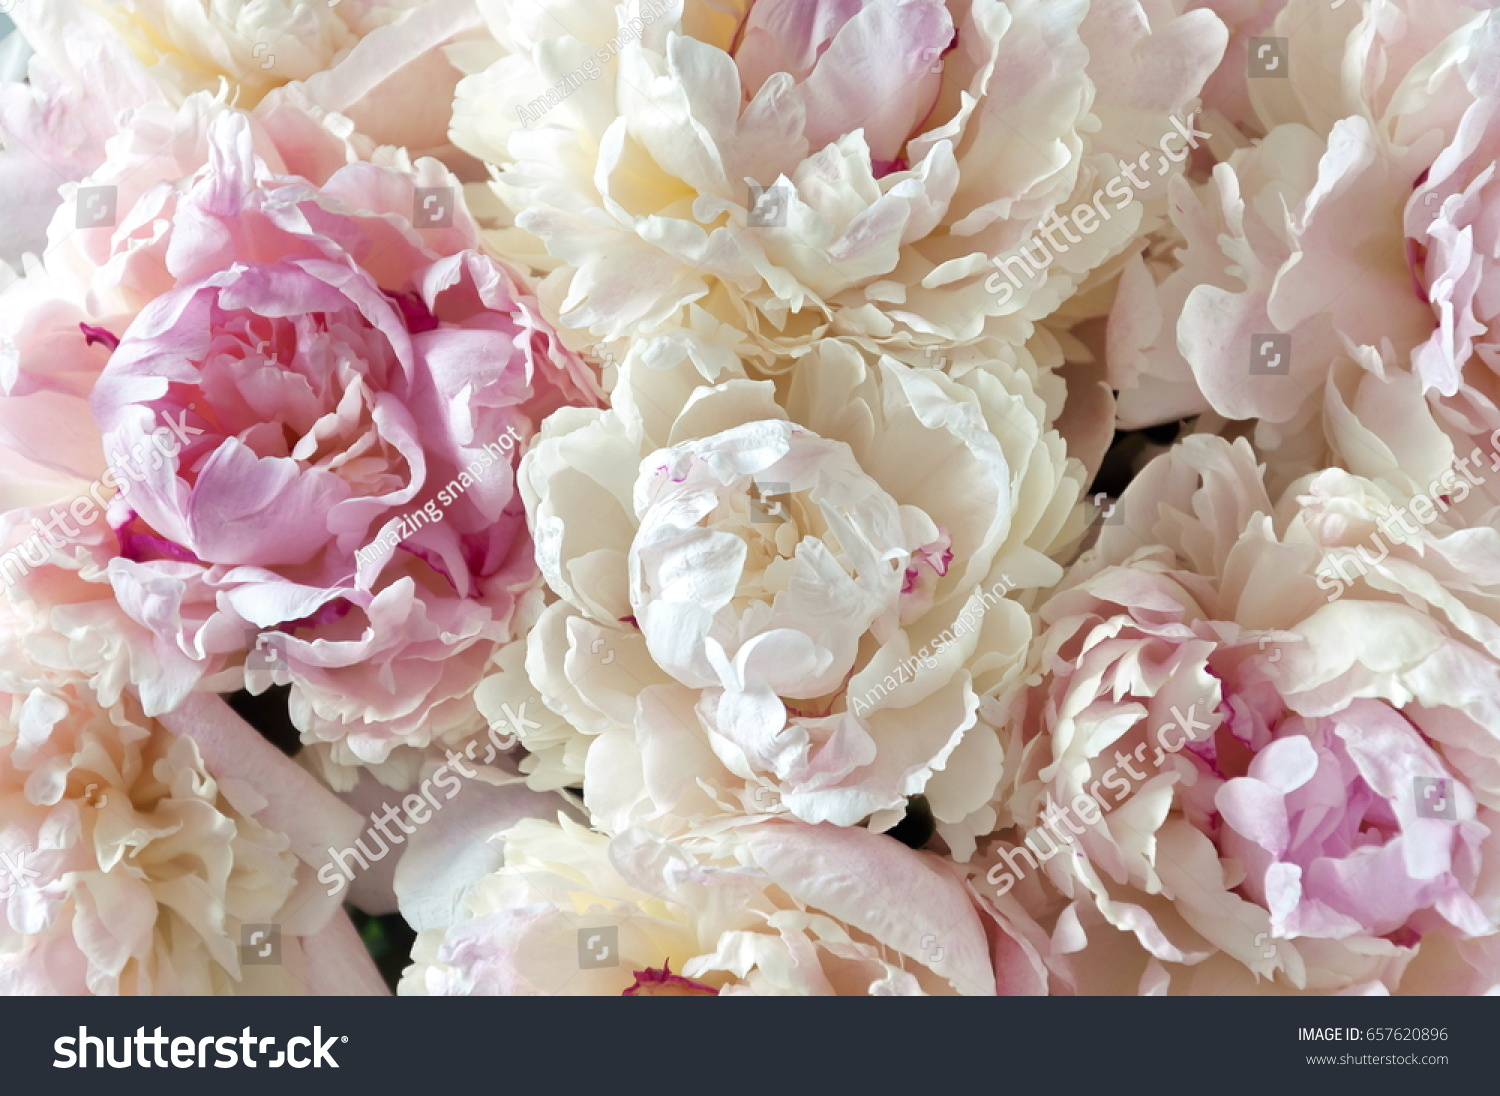 Floral background pink white peonies pattern stock photo edit now pink and white peonies pattern bouquet of peonies flower light texture mightylinksfo